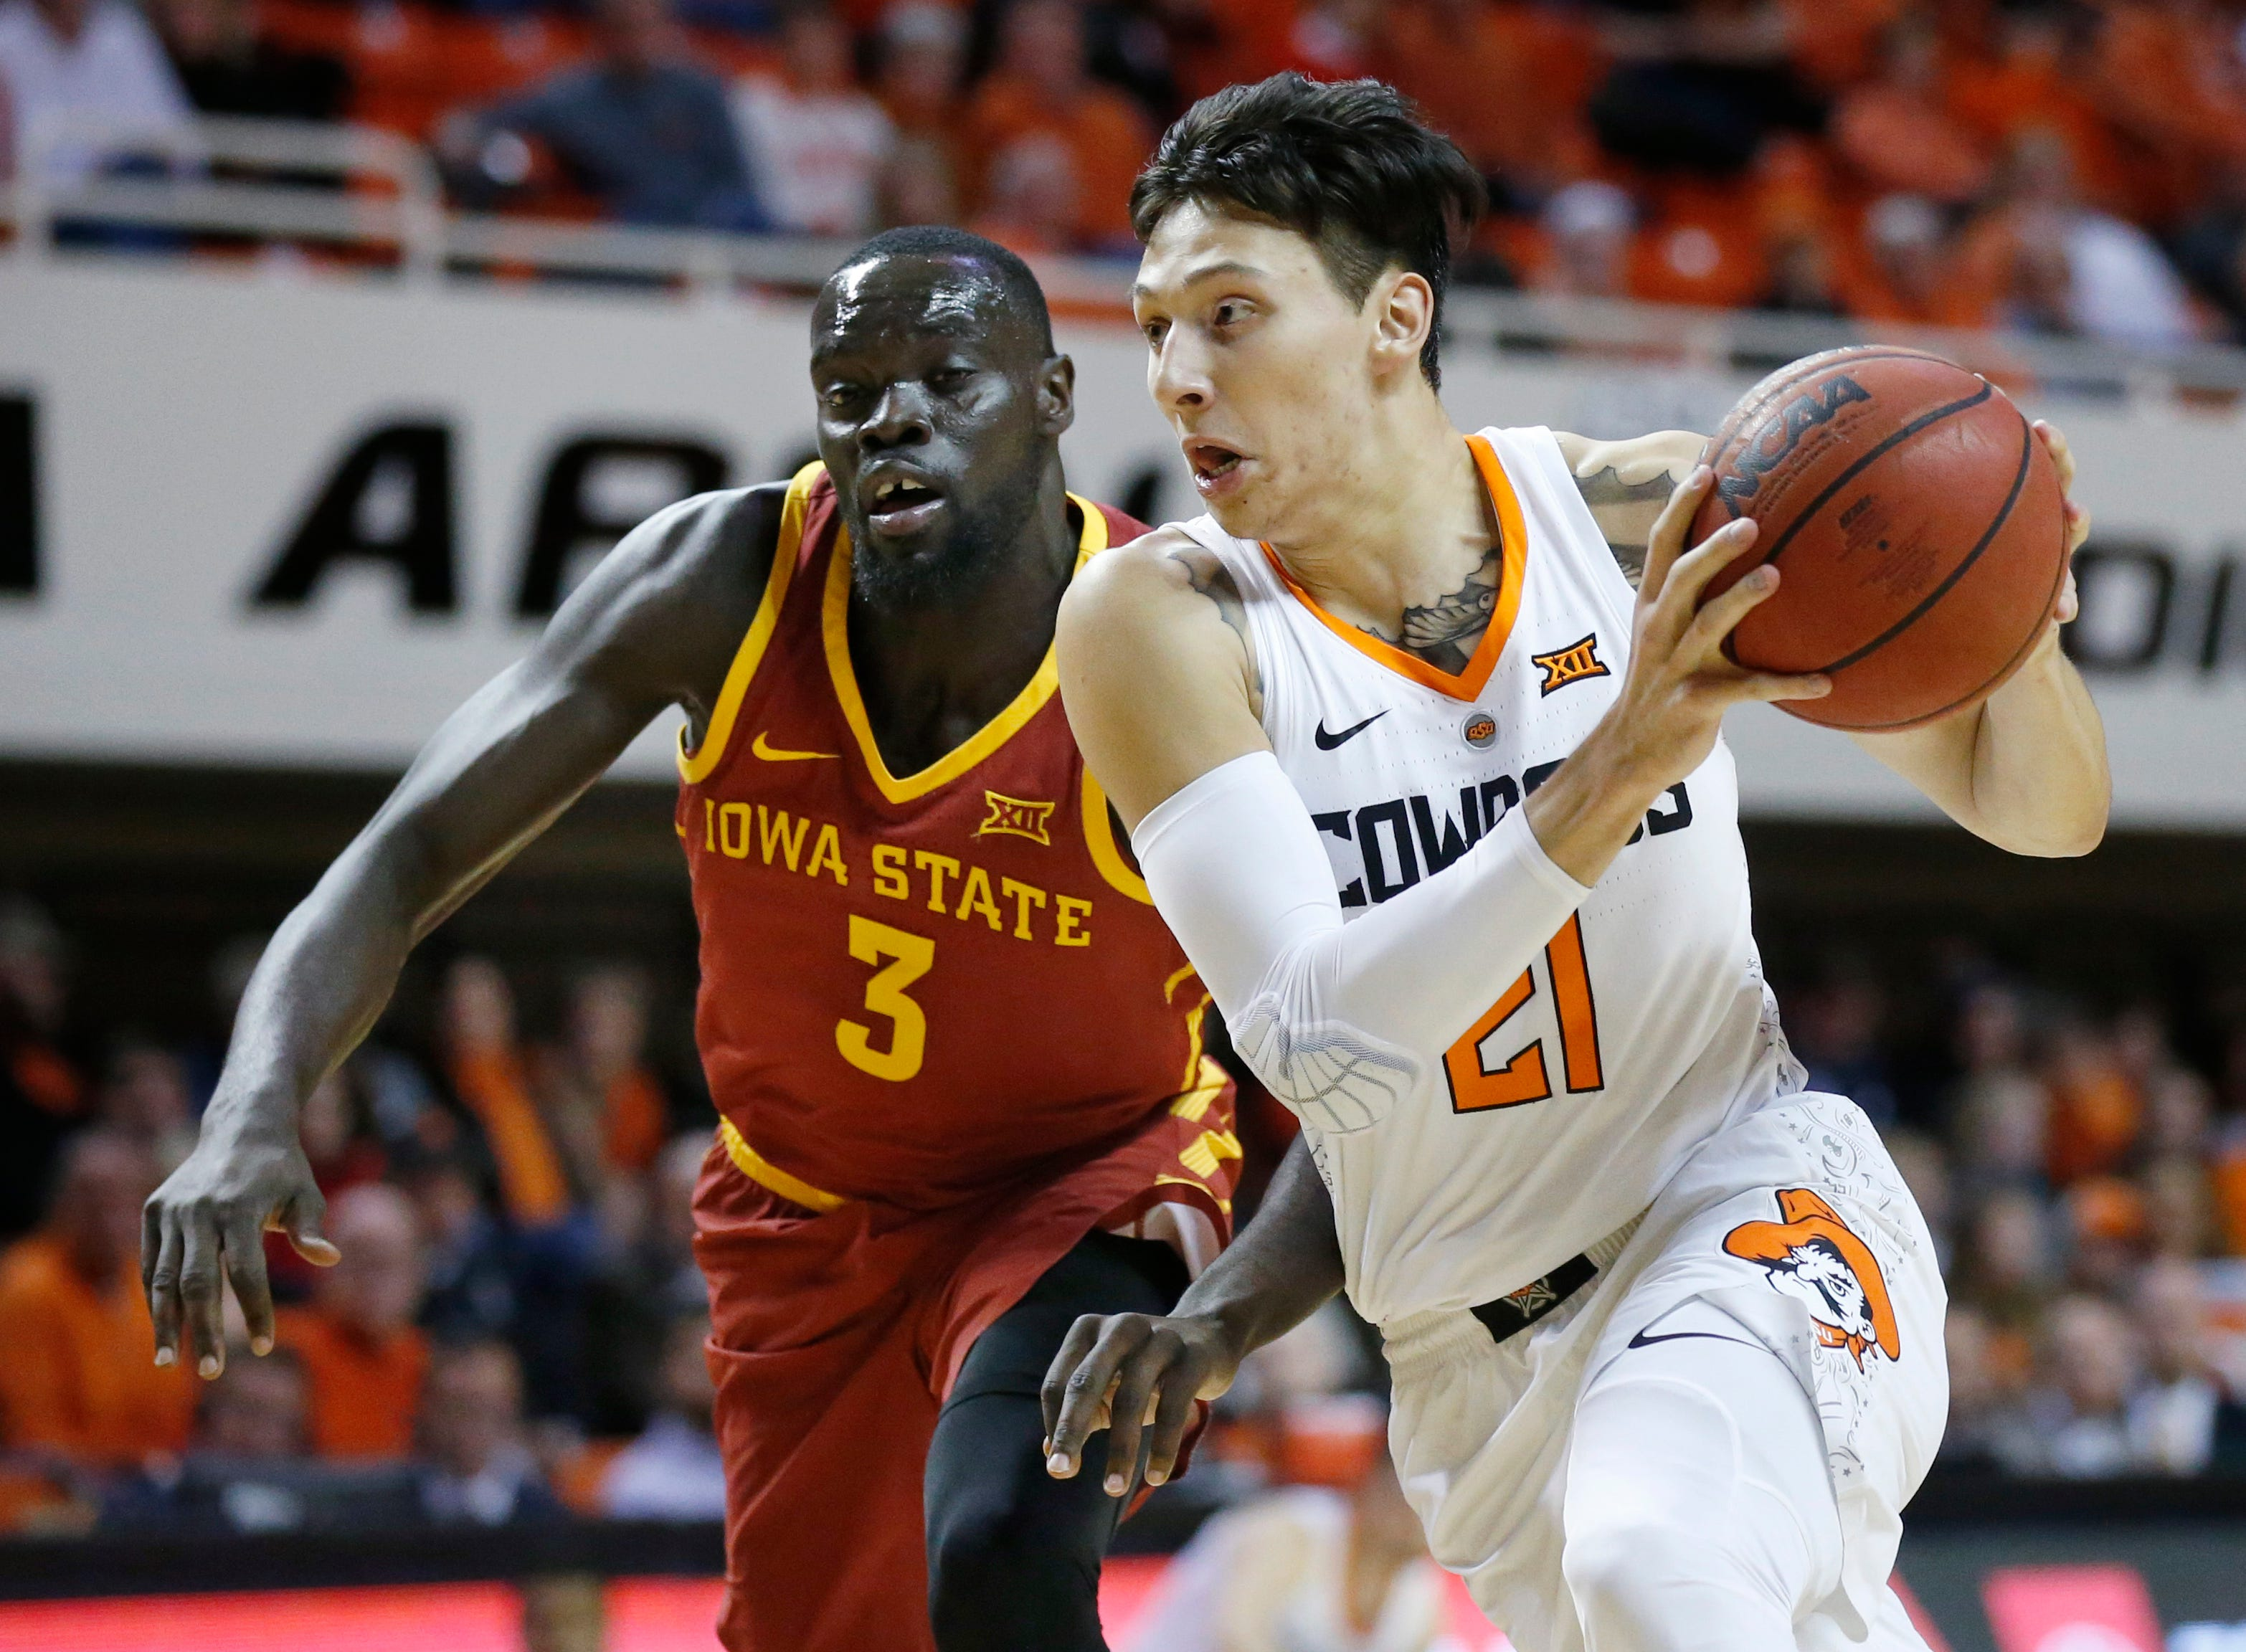 Oklahoma State guard Lindy Waters III (21) moves past Iowa State guard Marial Shayok (3) during the first half of an NCAA college basketball game in Stillwater, Okla., Wednesday, Jan. 2, 2019. (AP Photo/Sue Ogrocki)